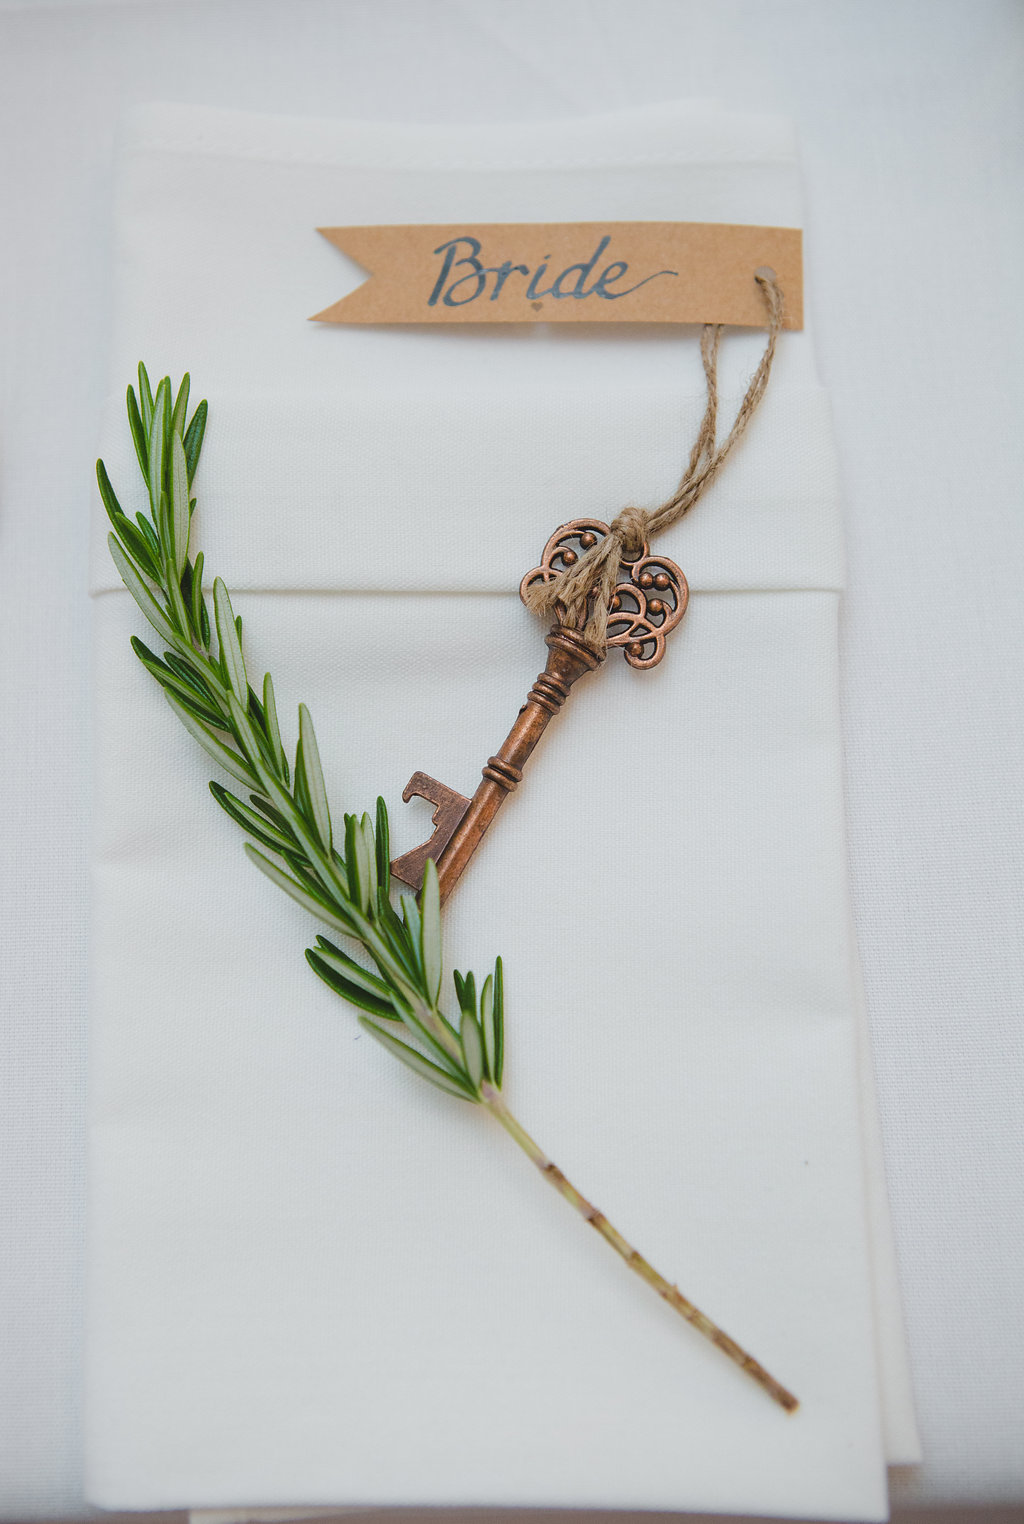 Our calligraphy on tags supplied by the client